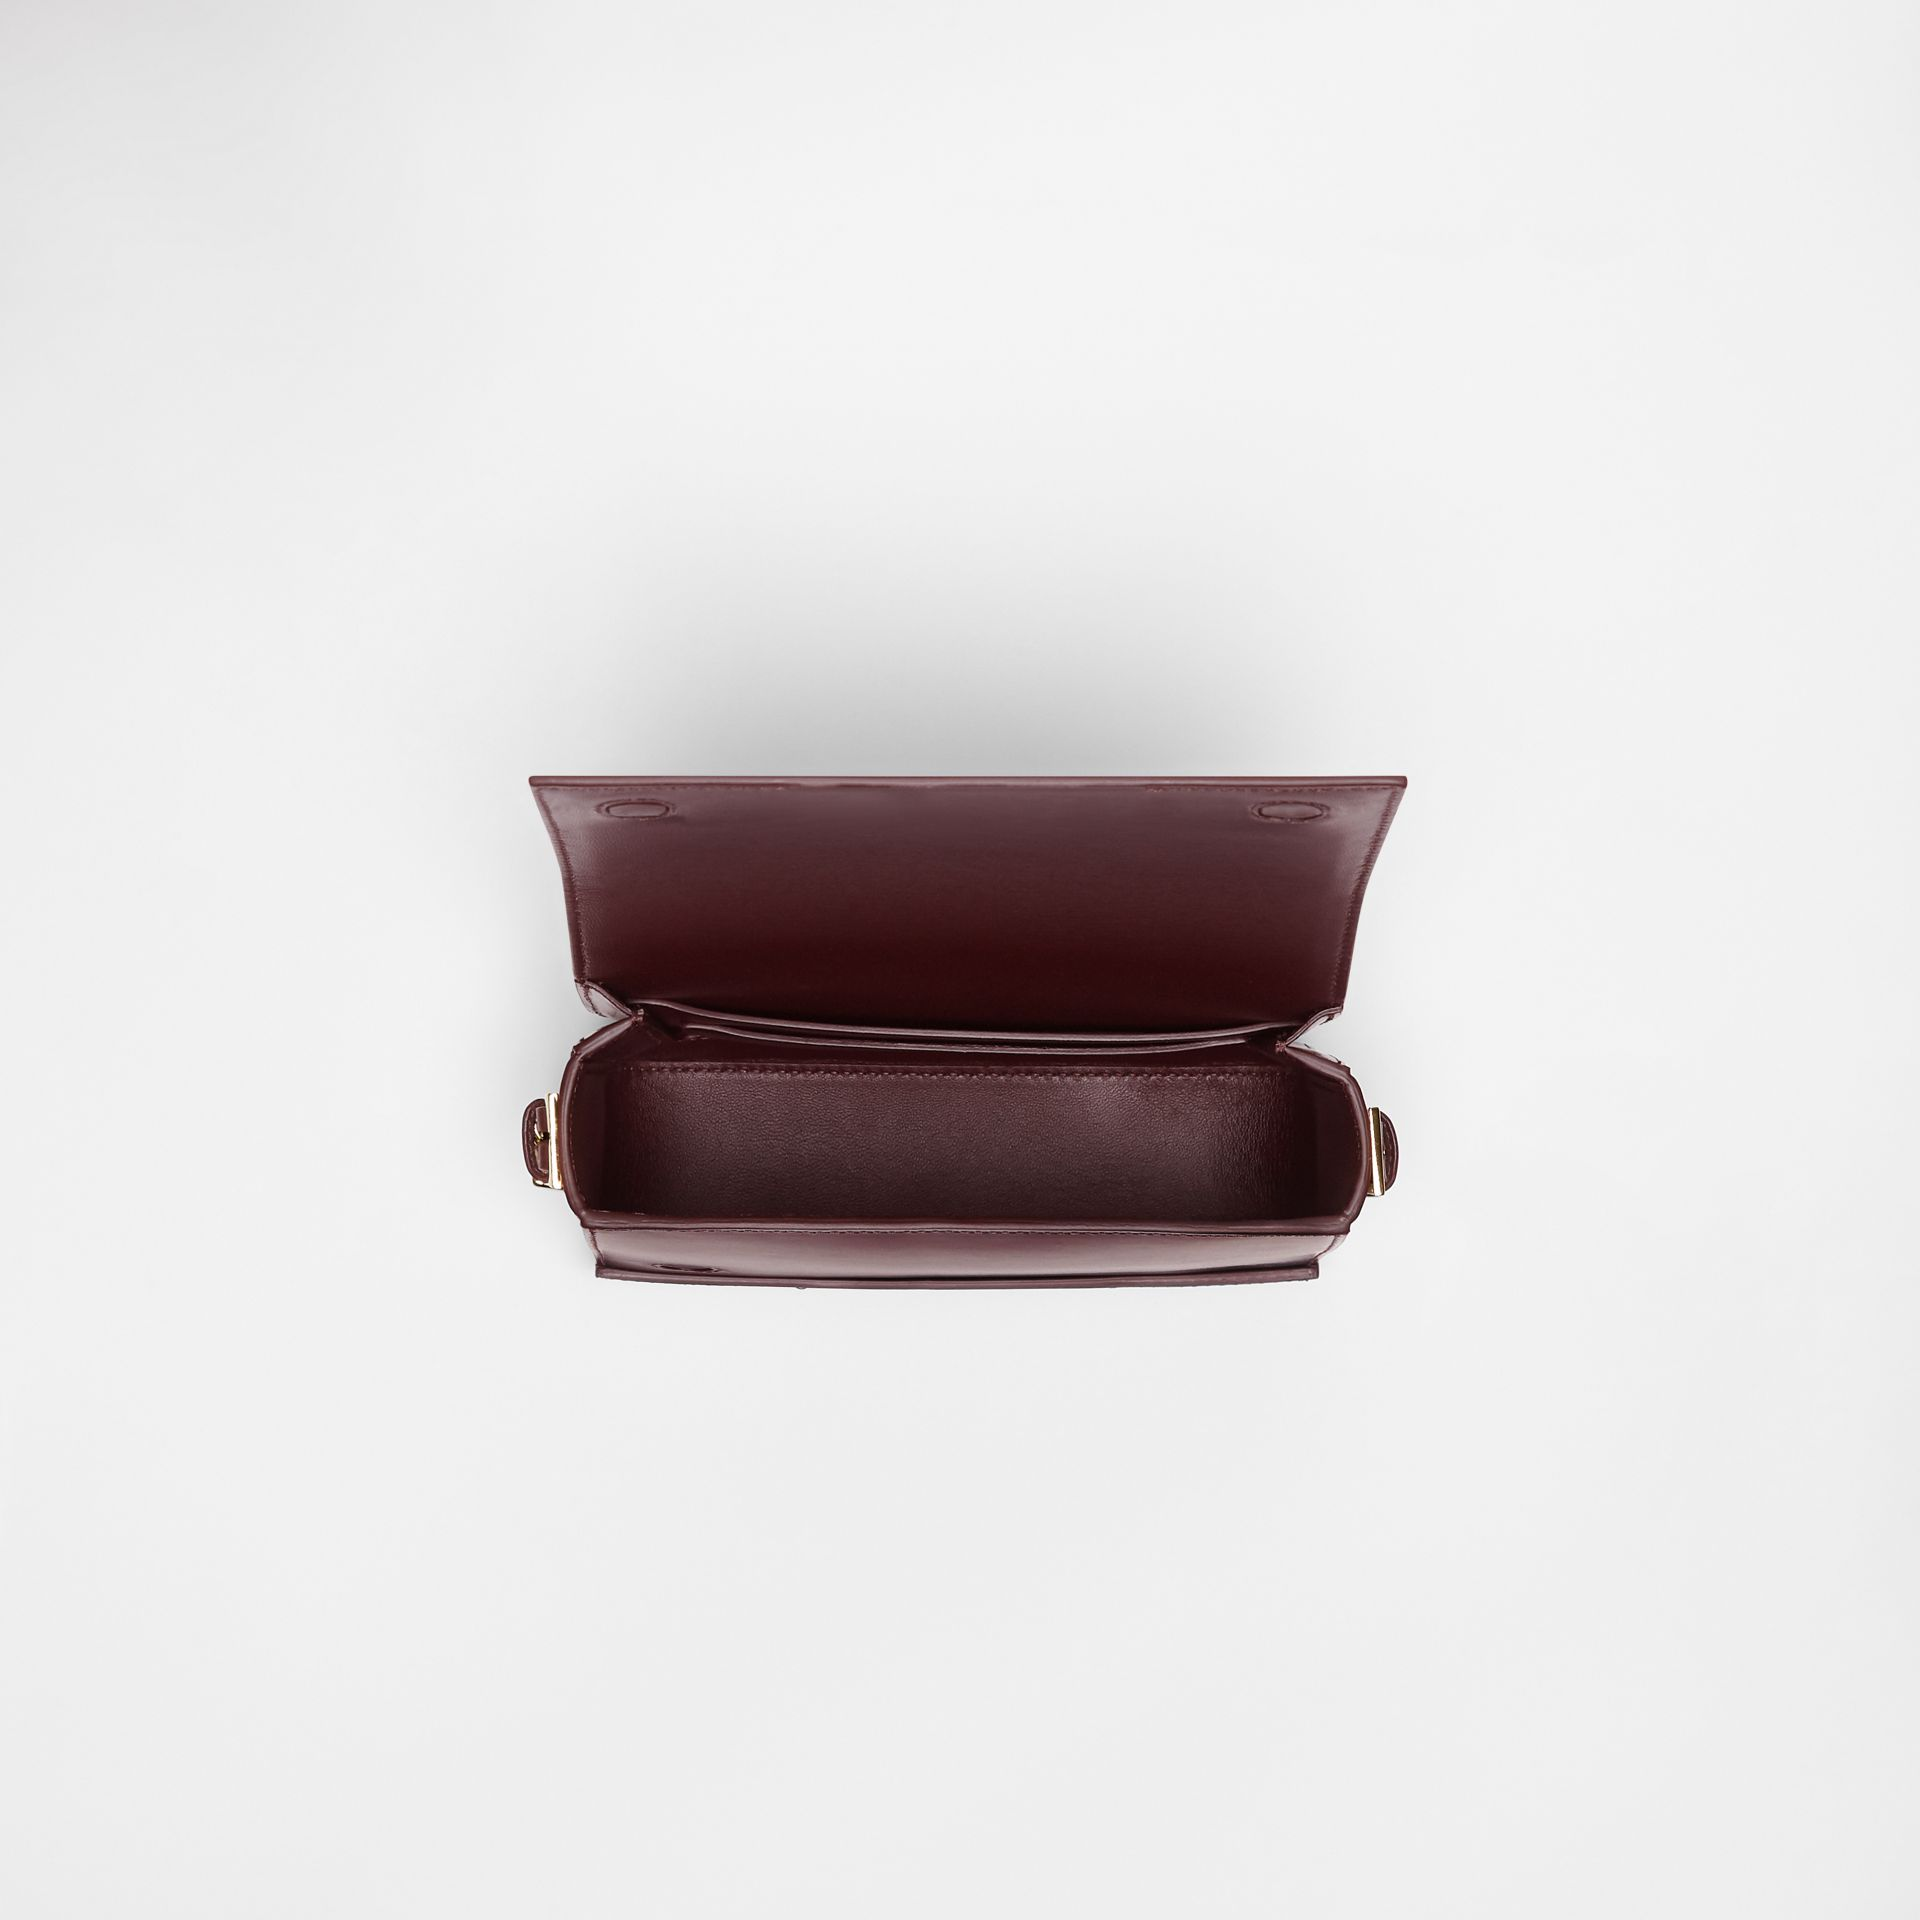 Small Leather Grace Bag in Oxblood - Women | Burberry - gallery image 4